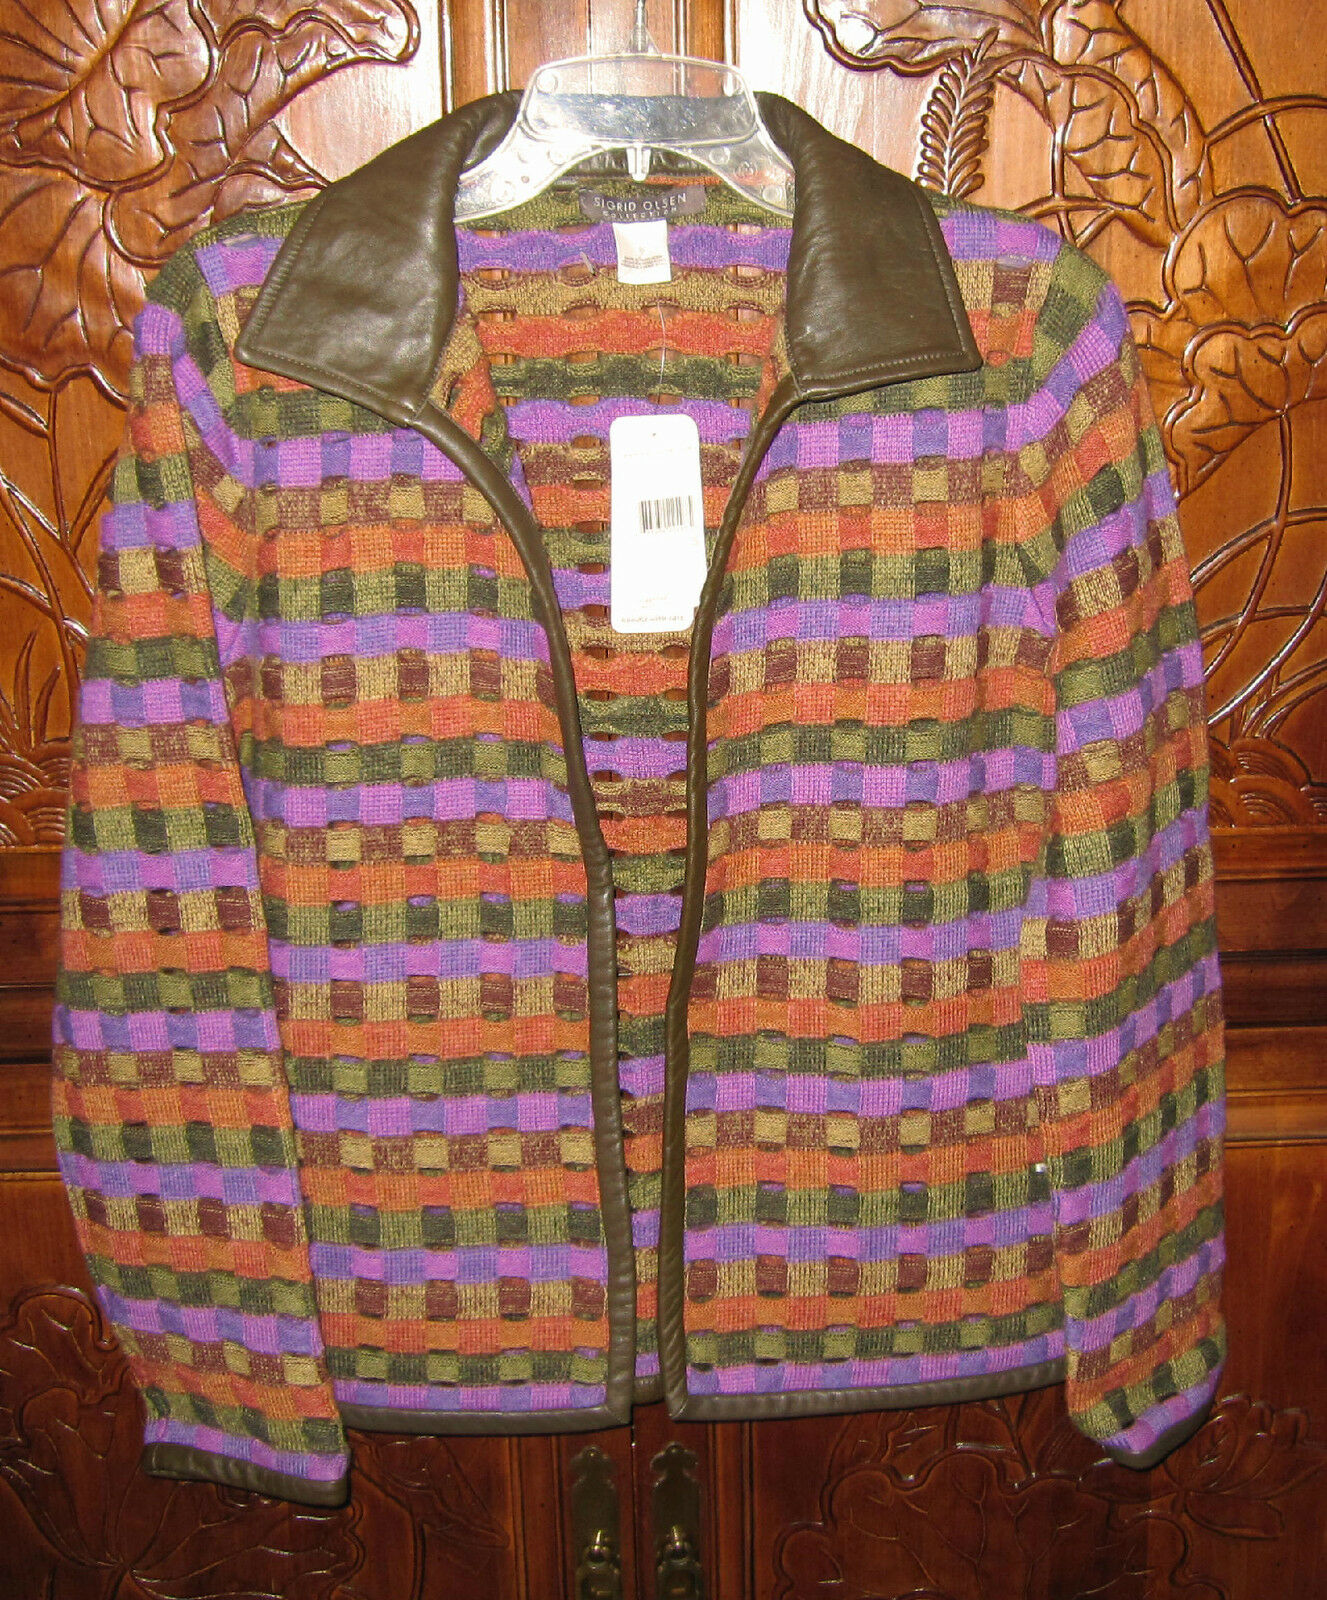 NWT NWT NWT Sigrid Olsen Collection 100% Wool   Leather Cardigan Sweater SZ S RT  298 a6e8a6